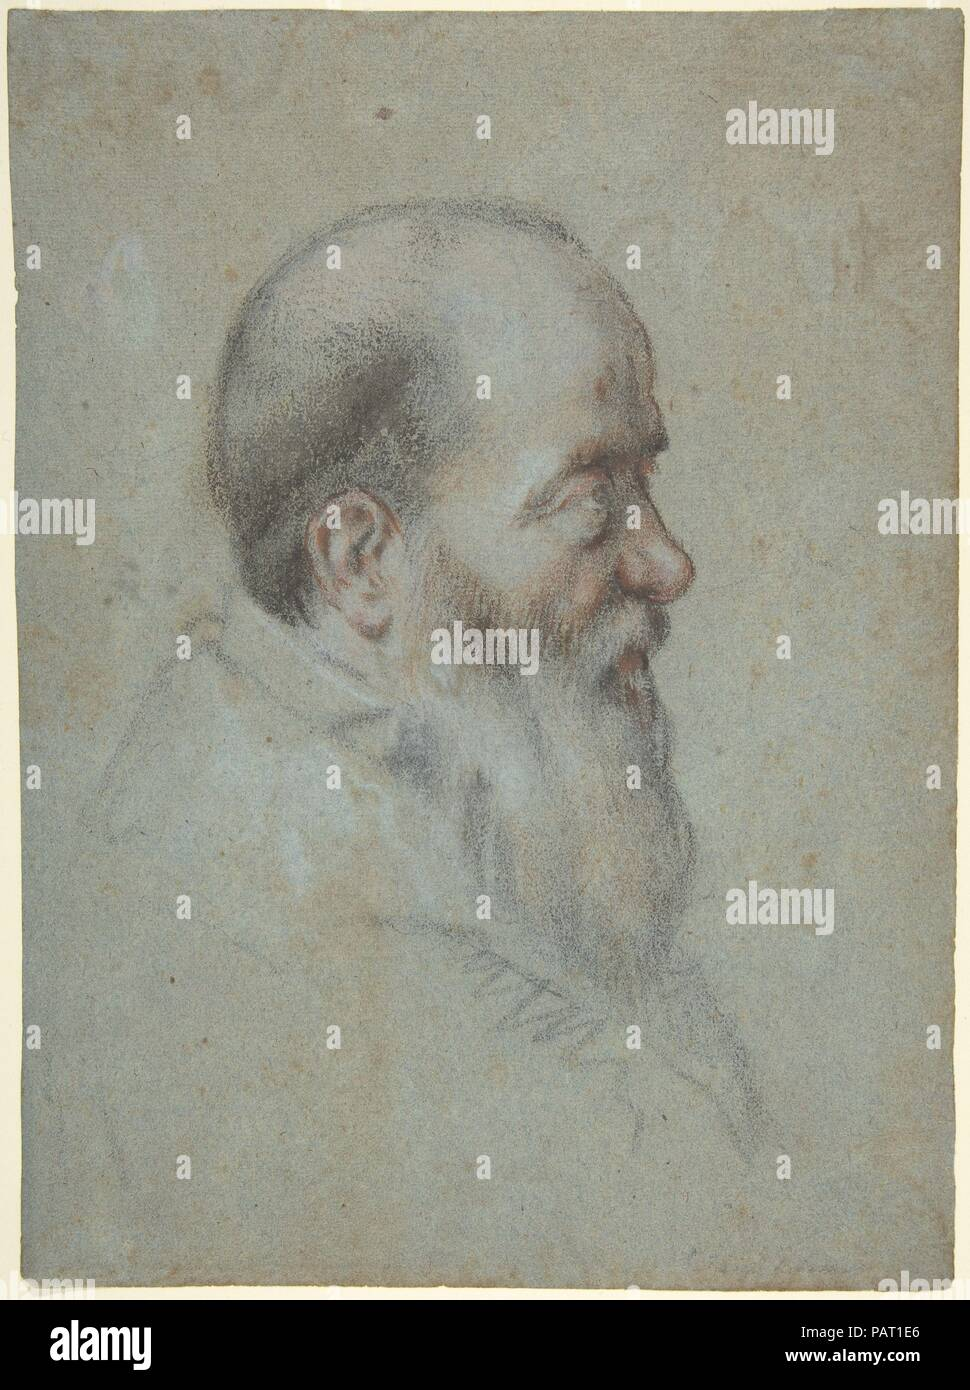 Bust of a Bearded Old Man, Profile to Right. Artist: Carletto Caliari (Italian, Venice 1567/70-1592/96 Venice). Dimensions: 10 9/16 x 7 13/16in. (26.8 x 19.8cm). Date: 1567-96. Museum: Metropolitan Museum of Art, New York, USA. - Stock Image